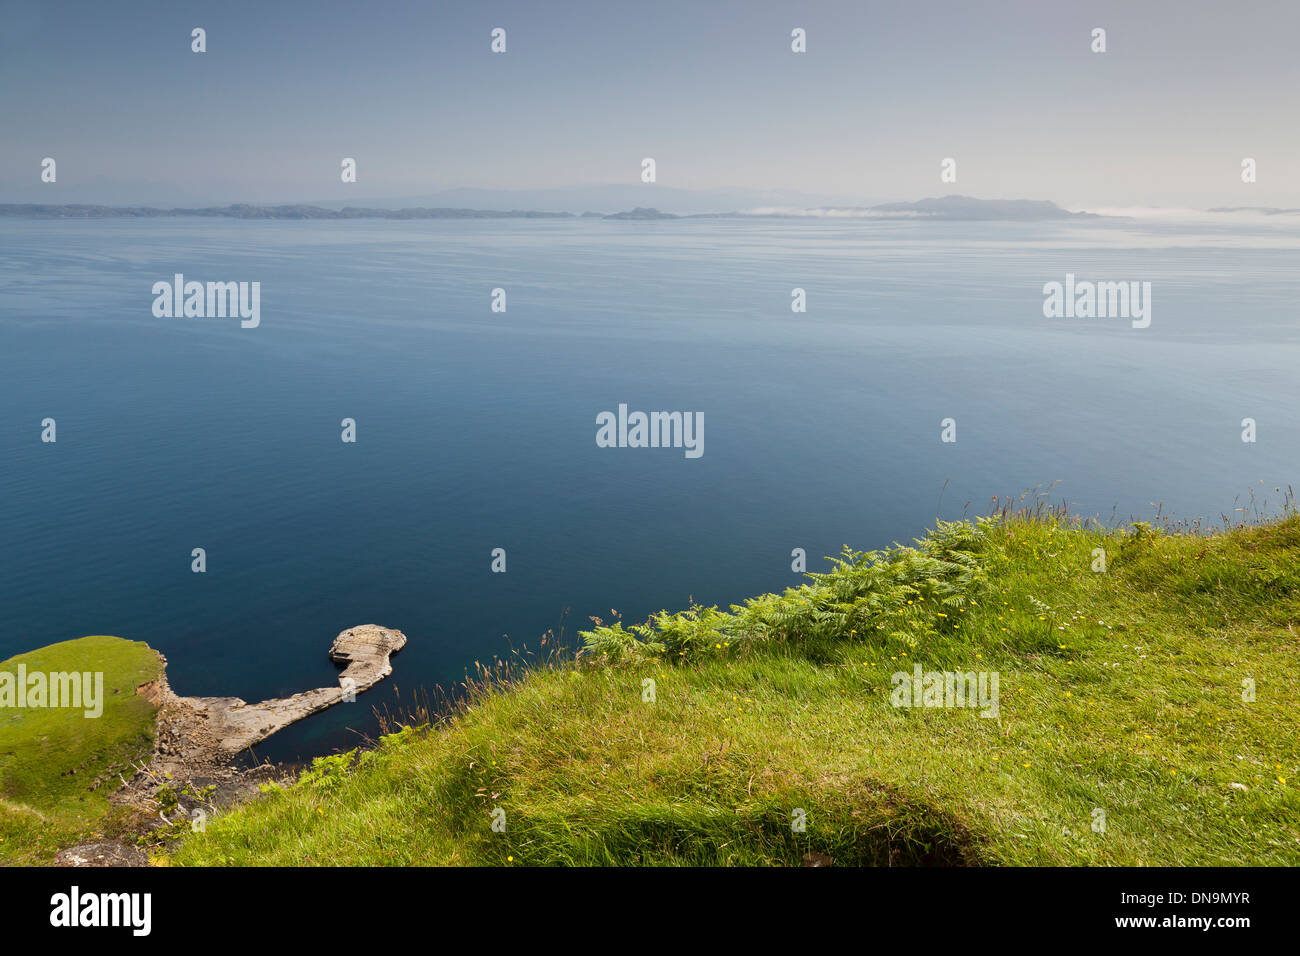 Viewpoint from the Isle of Skye to AppleCross and Isle of Raasay. Scotland UK - Stock Image